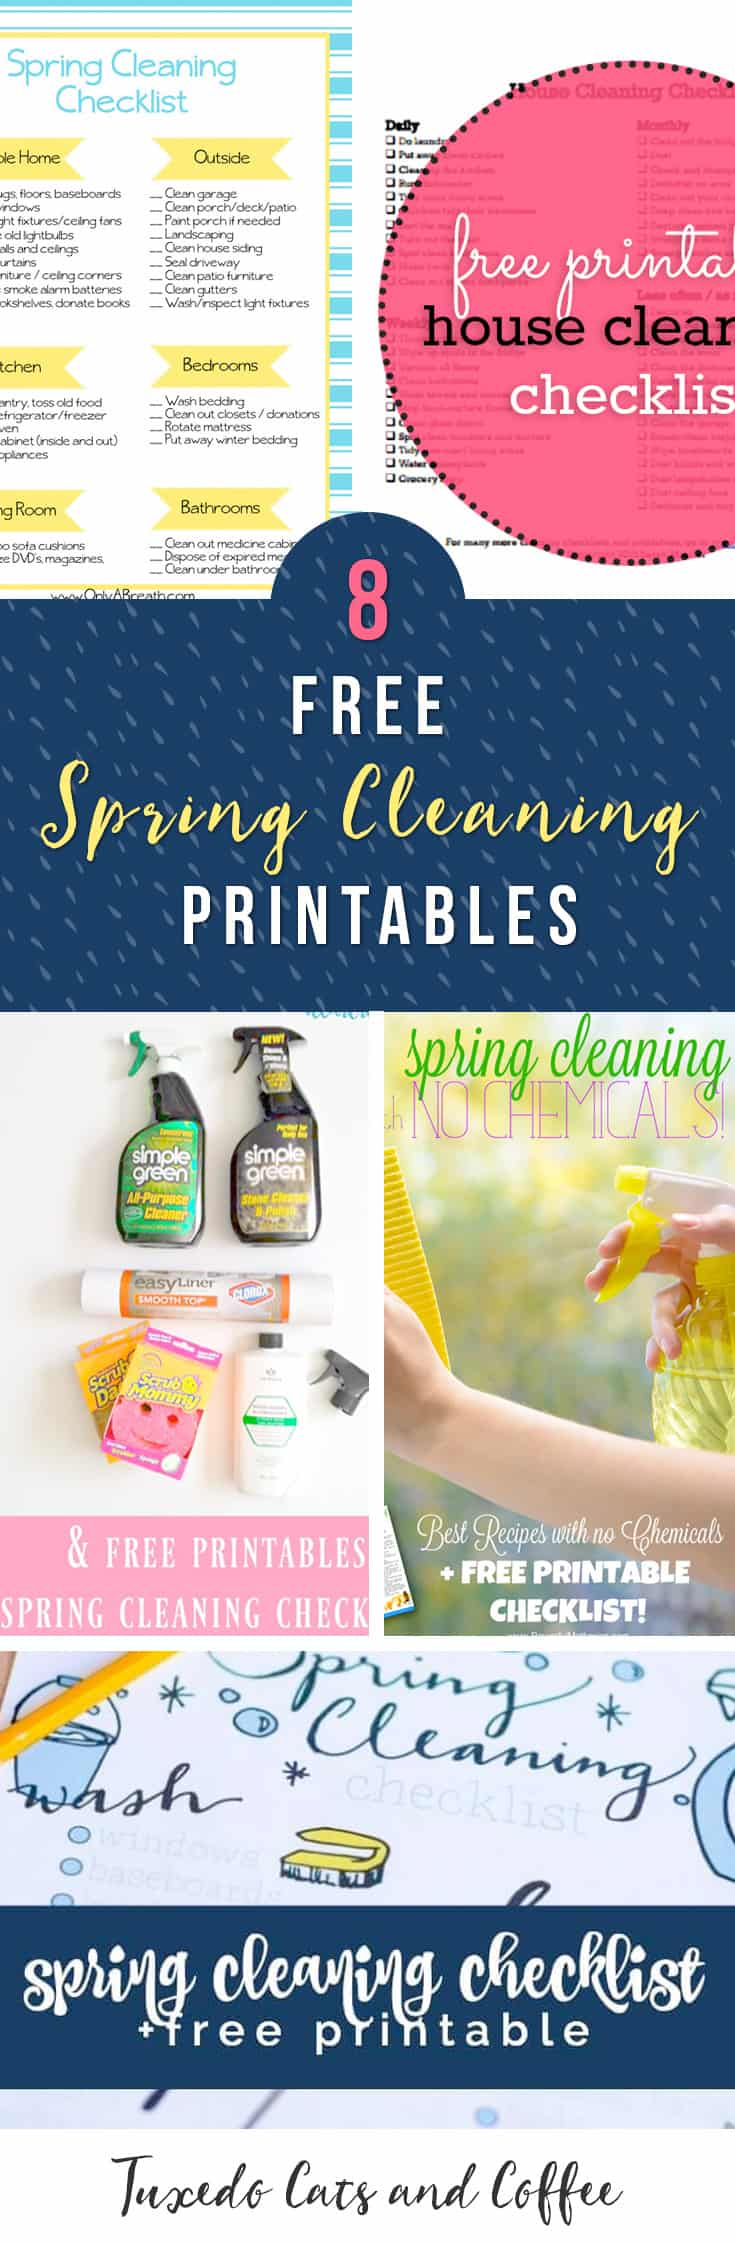 Have you tackled your spring cleaning yet?  It's always refreshing to have a cleaner house at the end of the process, even though the cleaning part can be a bit long.  Here are 8 free spring cleaning printables to help you clean your home!